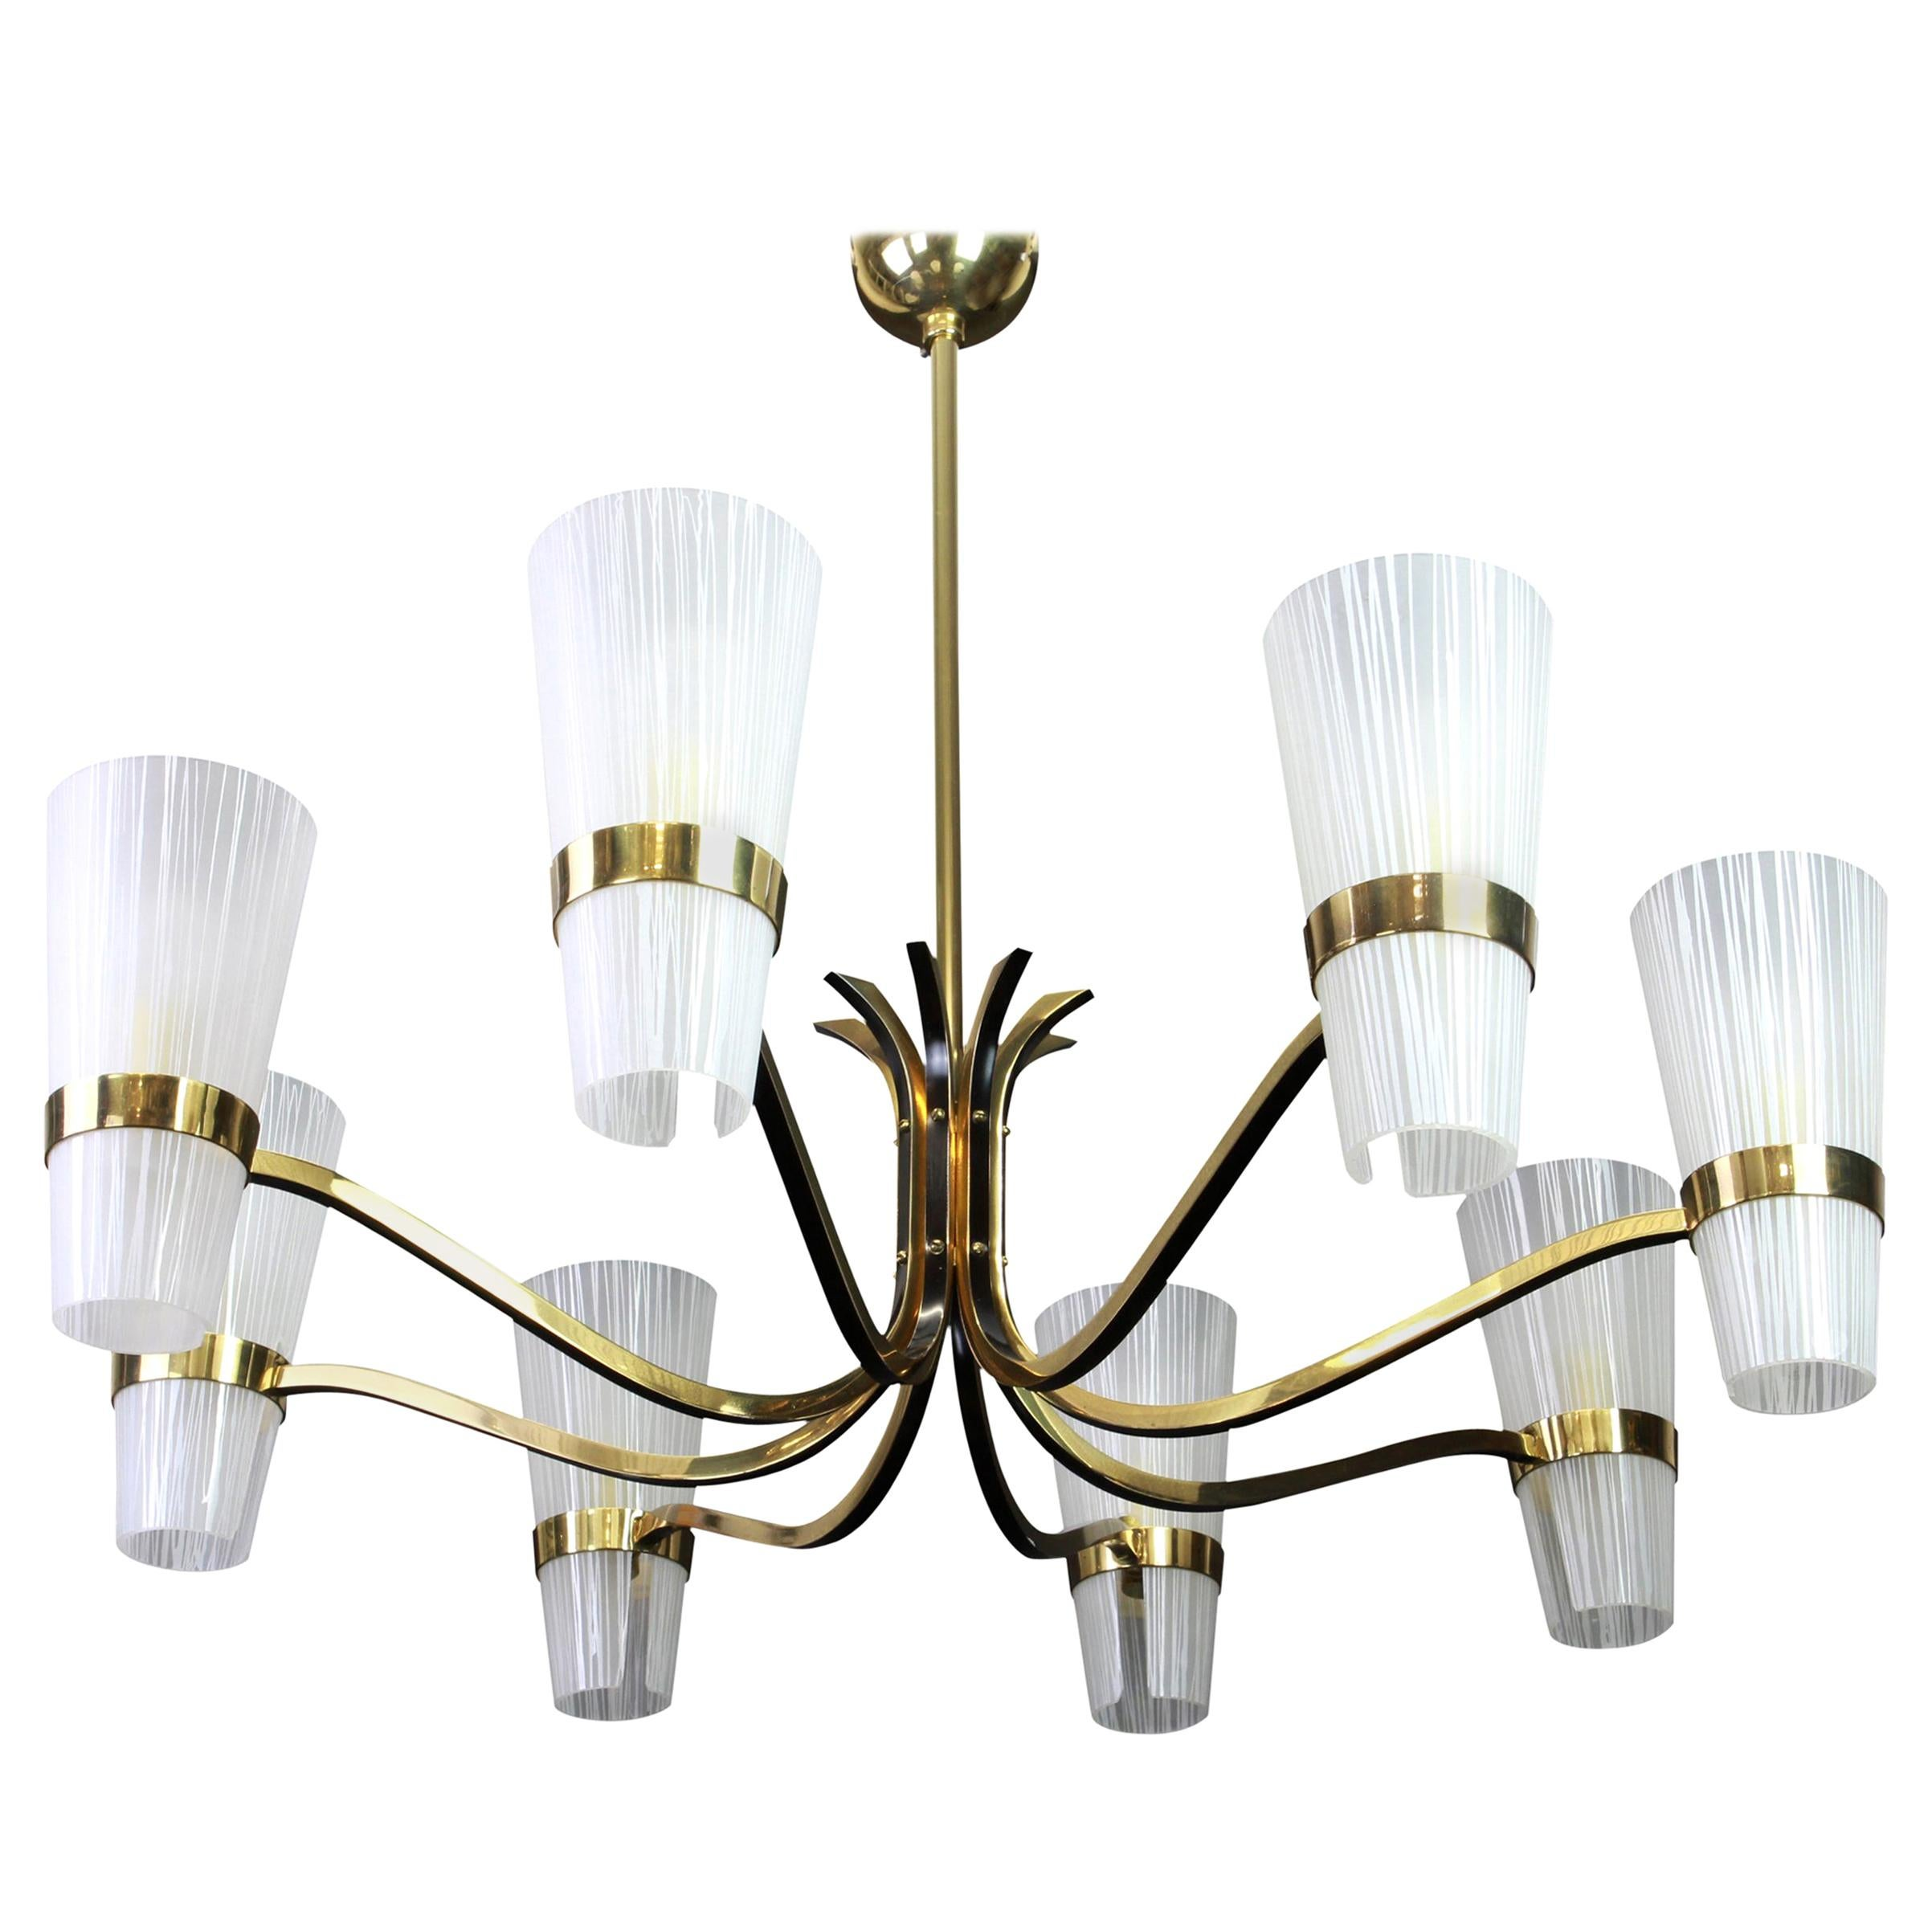 Huge Sunburst Brass and Glass Chandelier, Stilnovo Style, 1950s